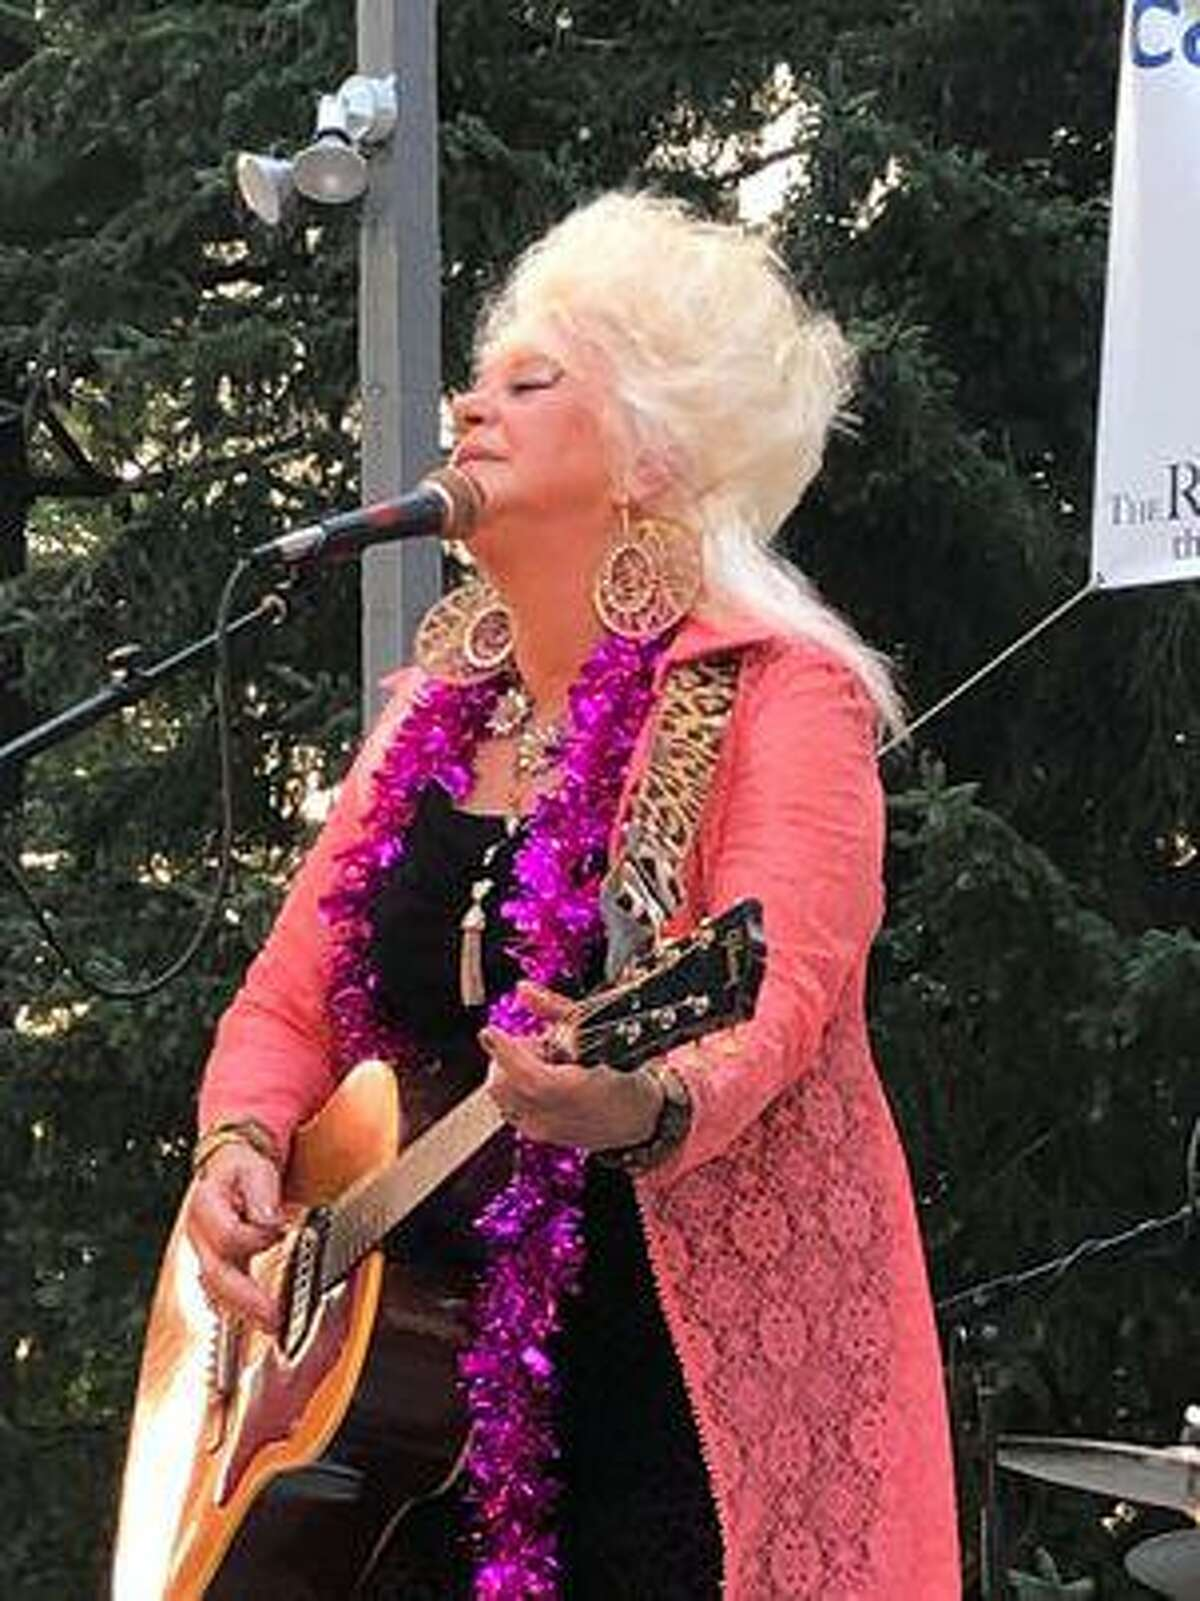 Singer Christine Ohlman is performing at the Gilson Theatre in Winsted.